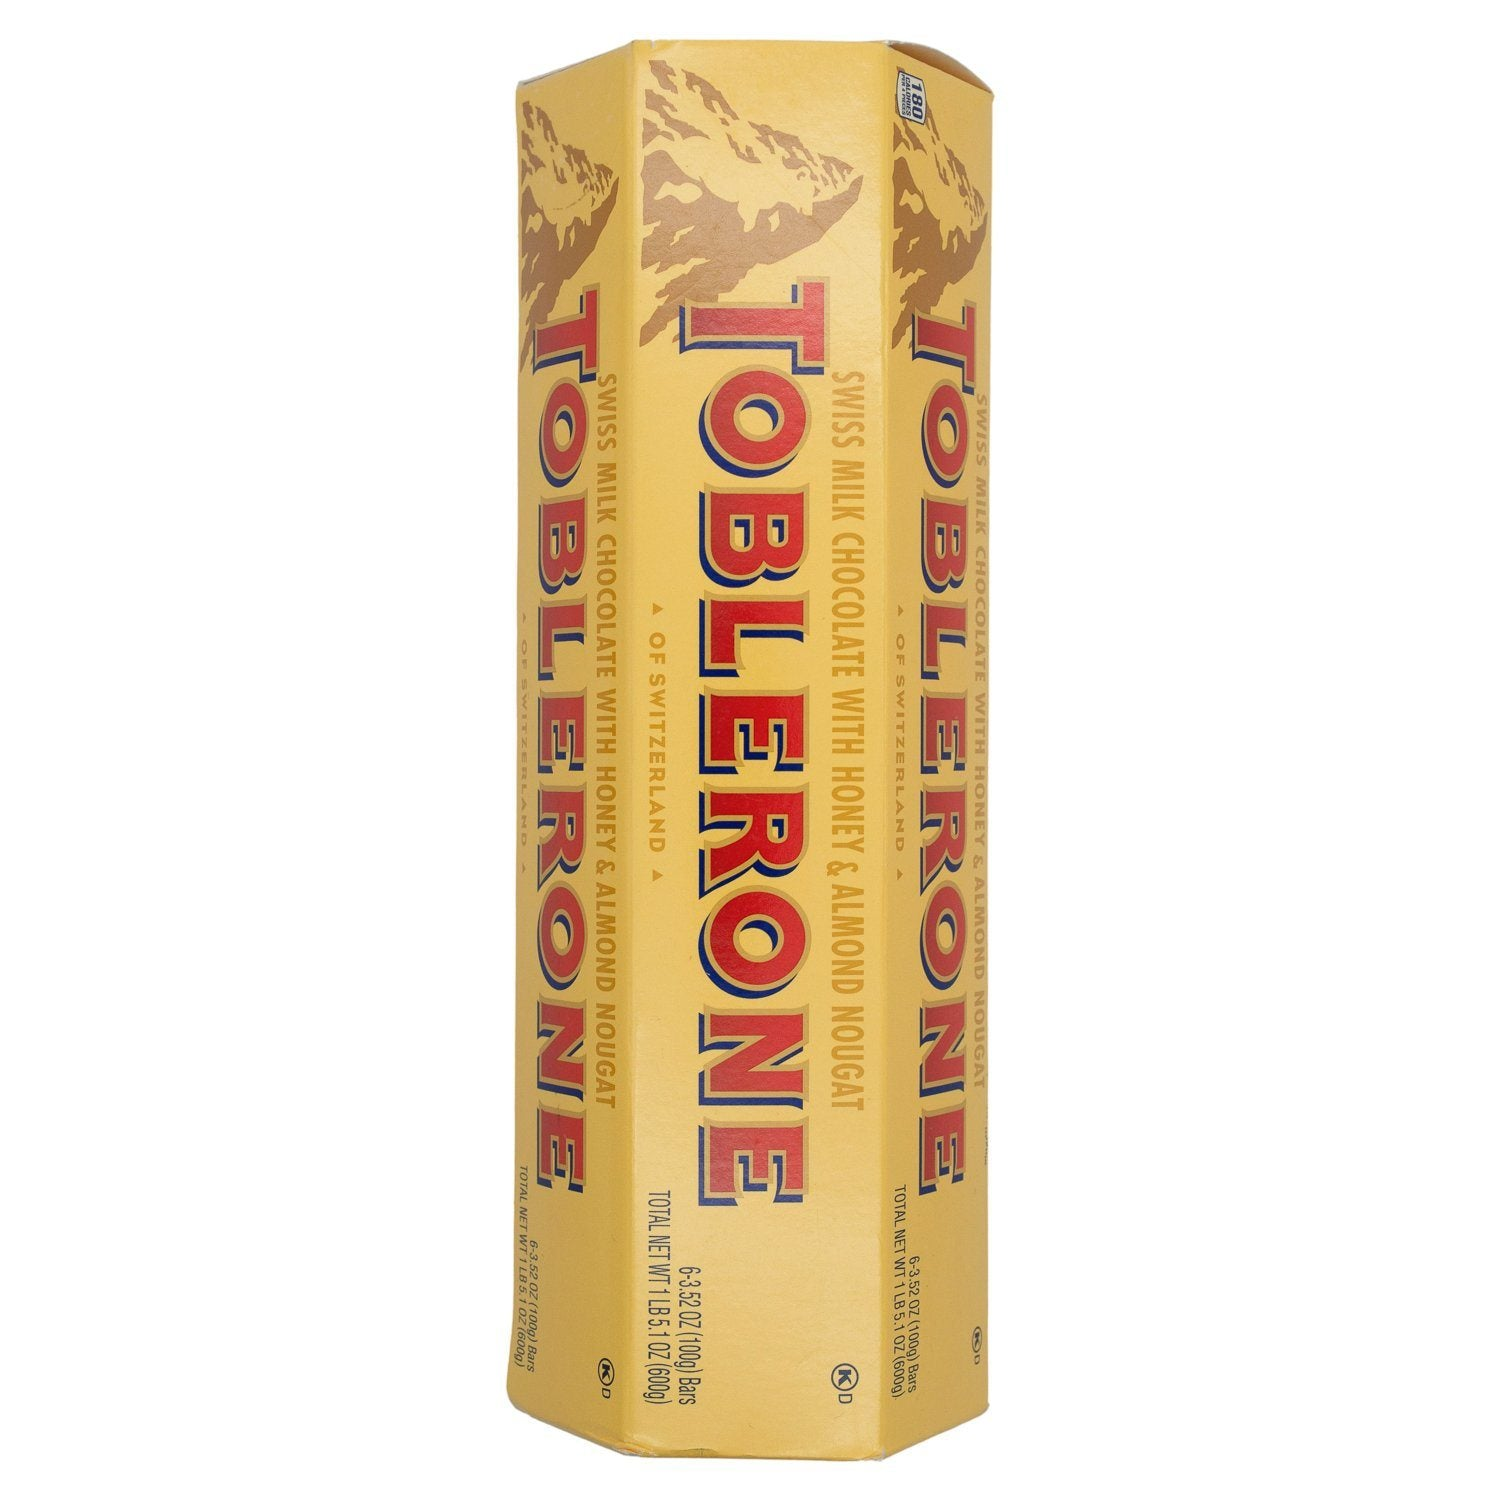 Toblerone Swiss Chocolate with Honey & Almond Nougat Meltable Toblerone Original 3.52 Oz-6 Count